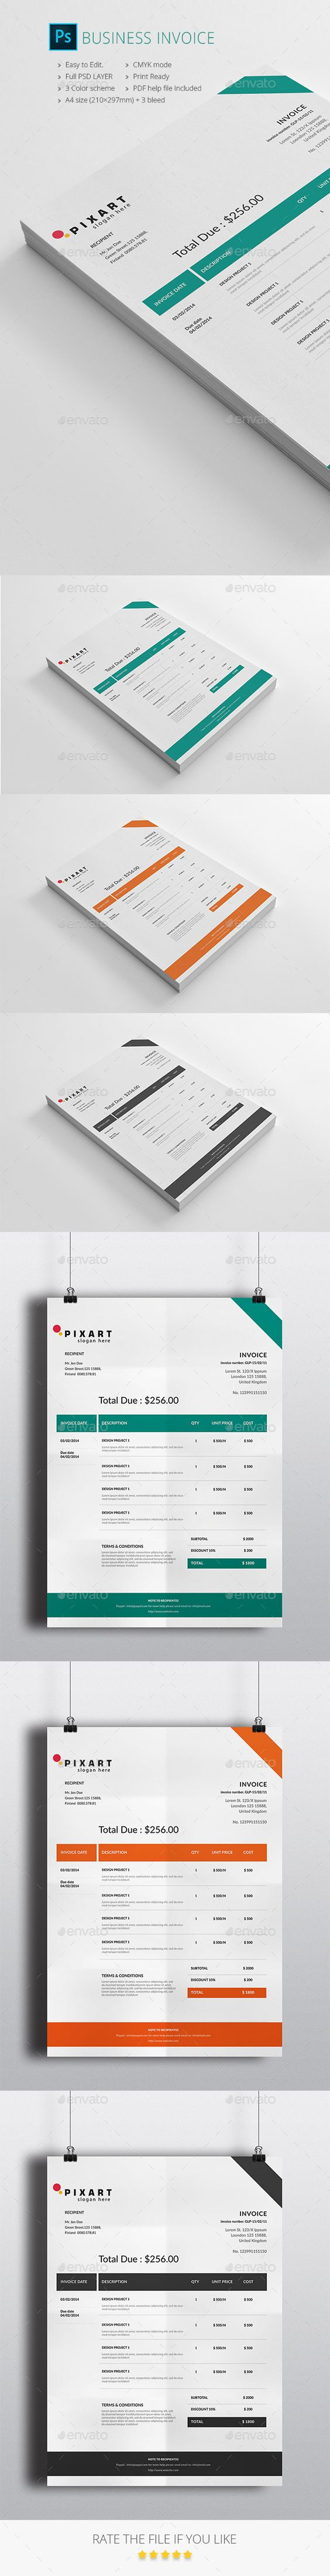 business invoice | bill o'brien, invoice template and business, Invoice examples